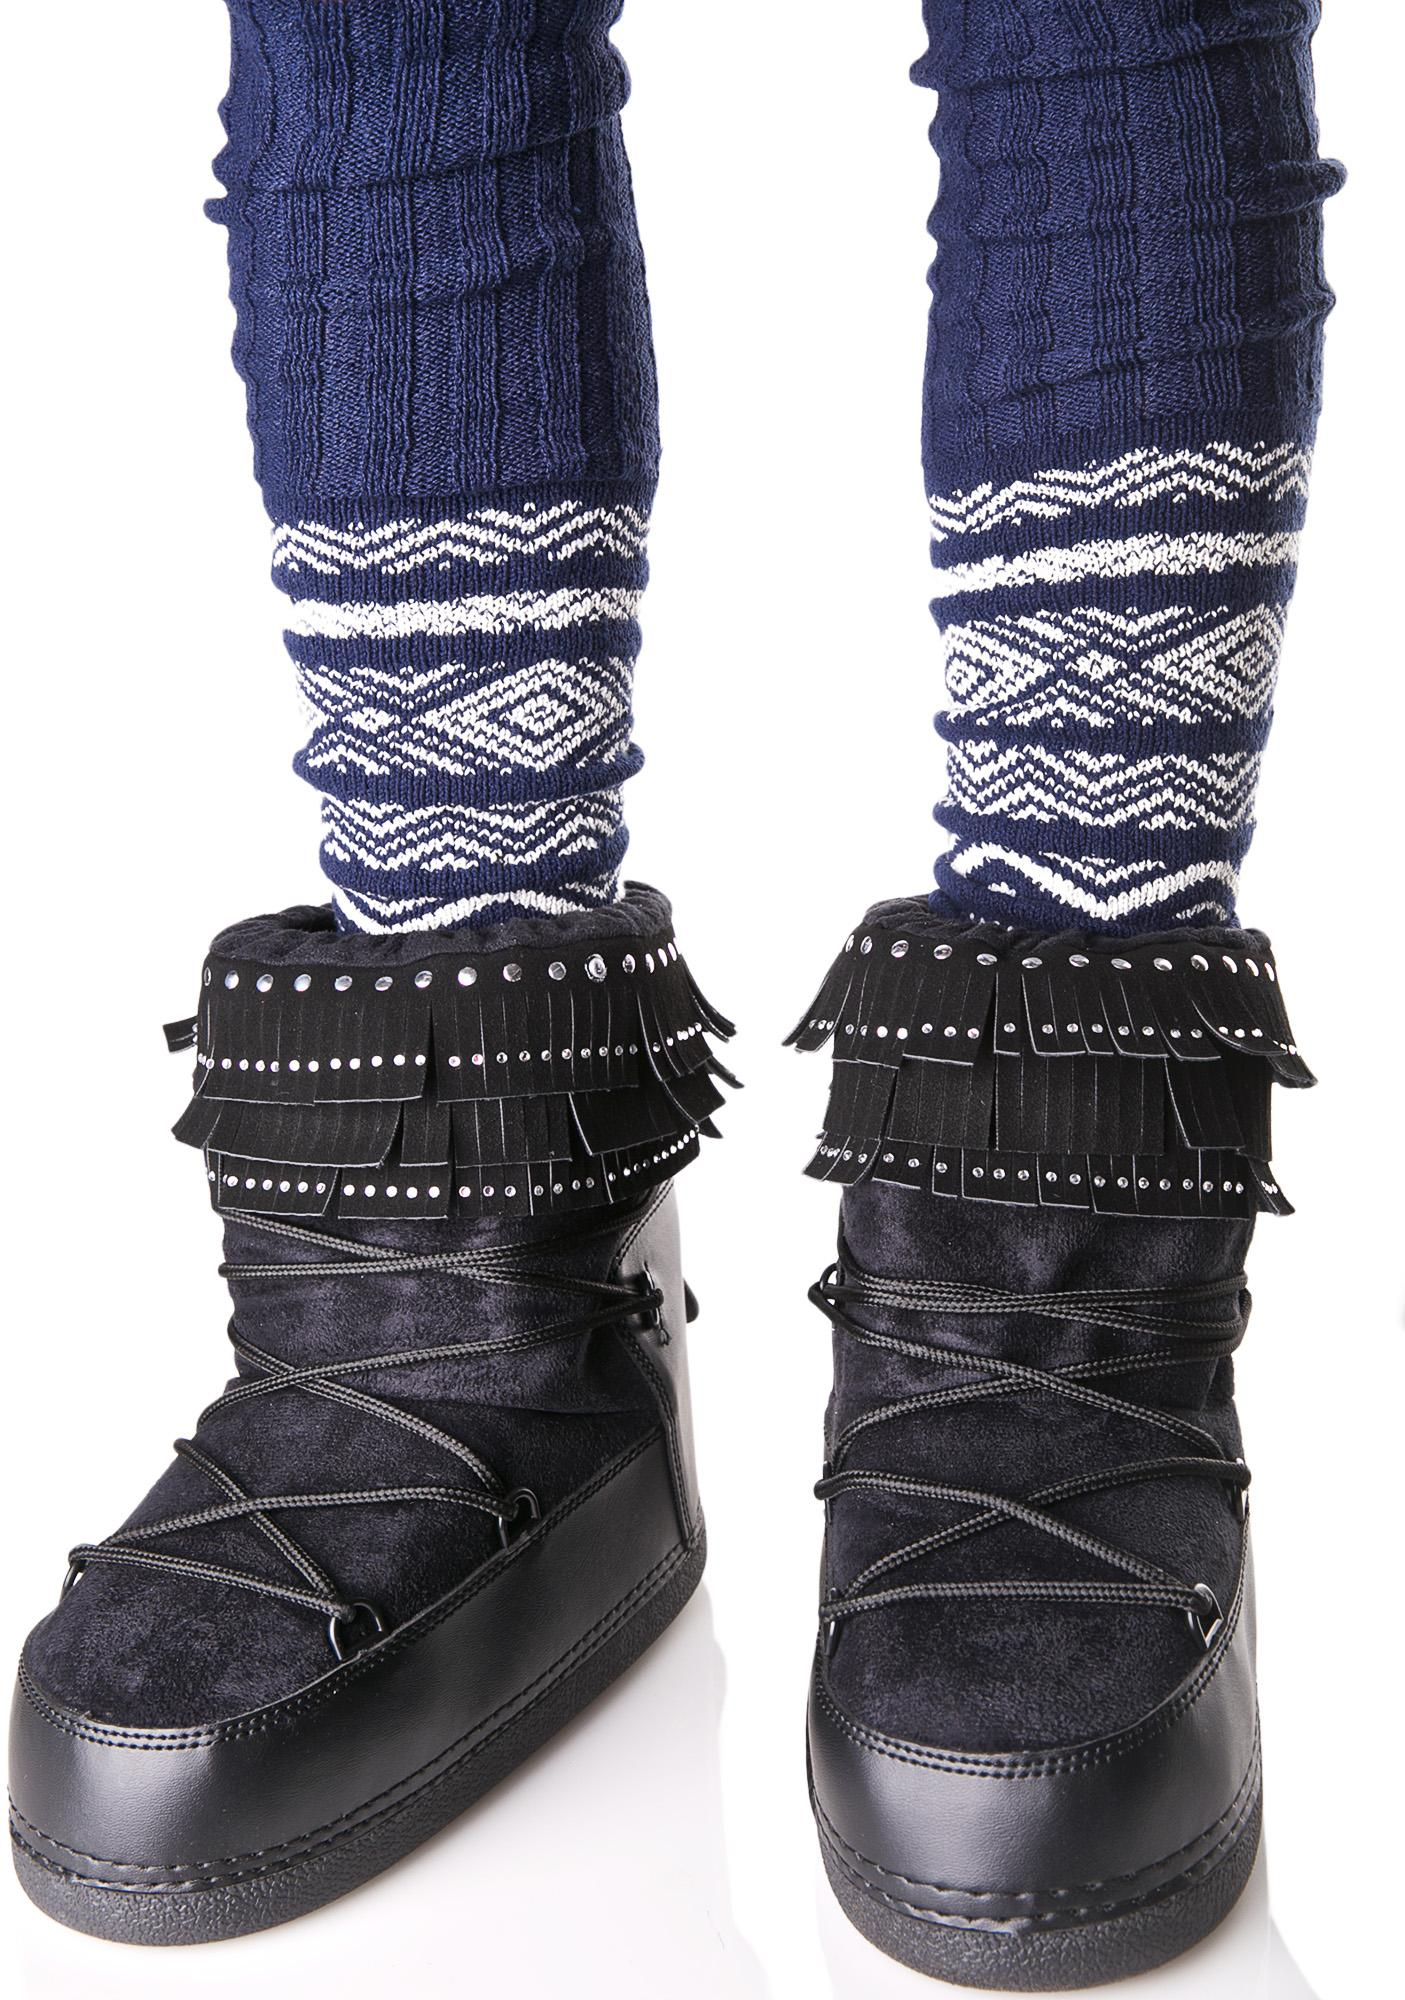 Dark Plutonic Moon Boots